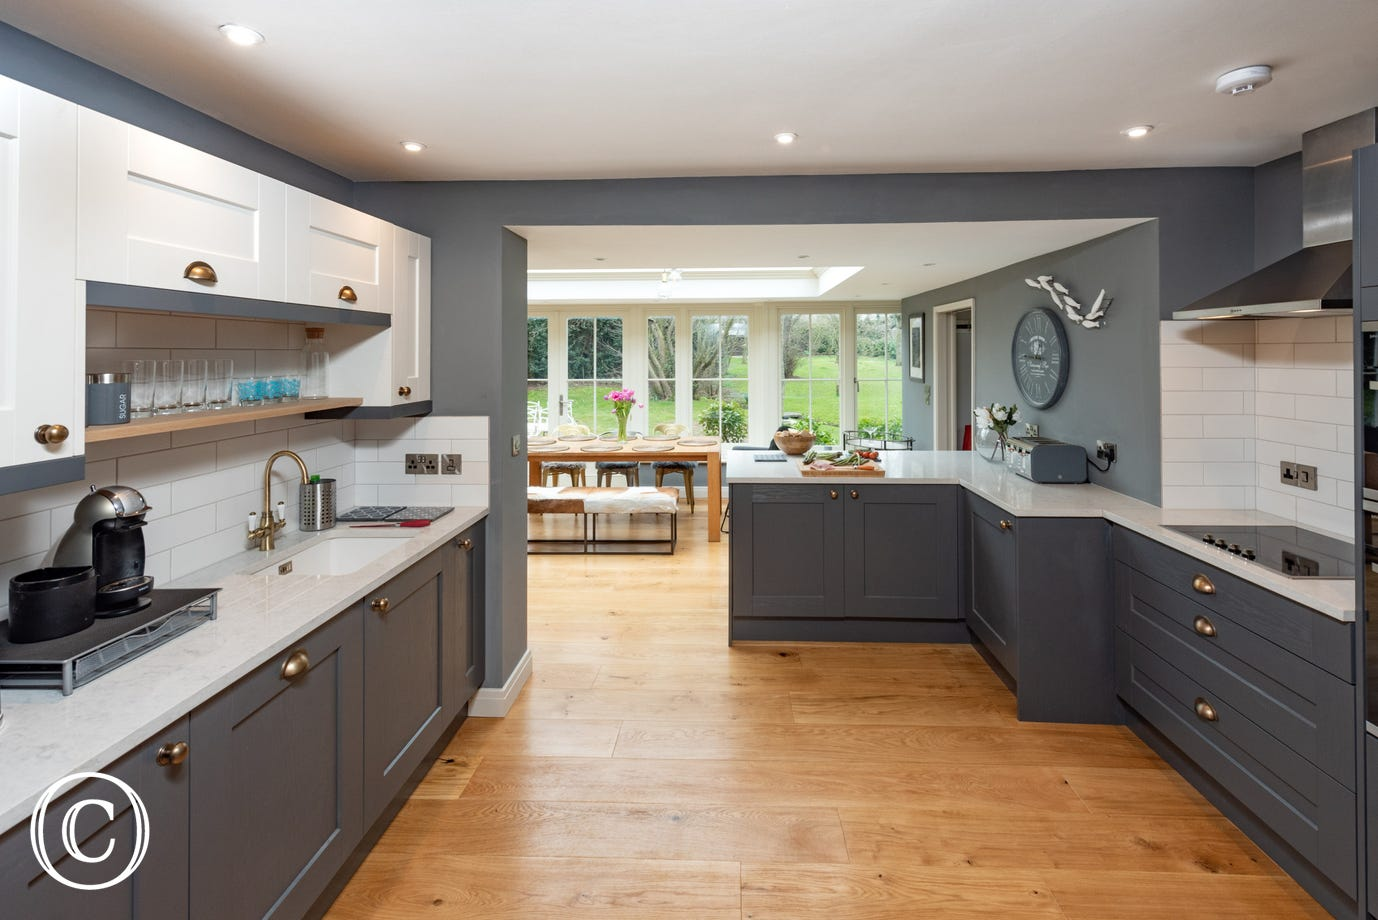 Open plan kitchen / conservatory